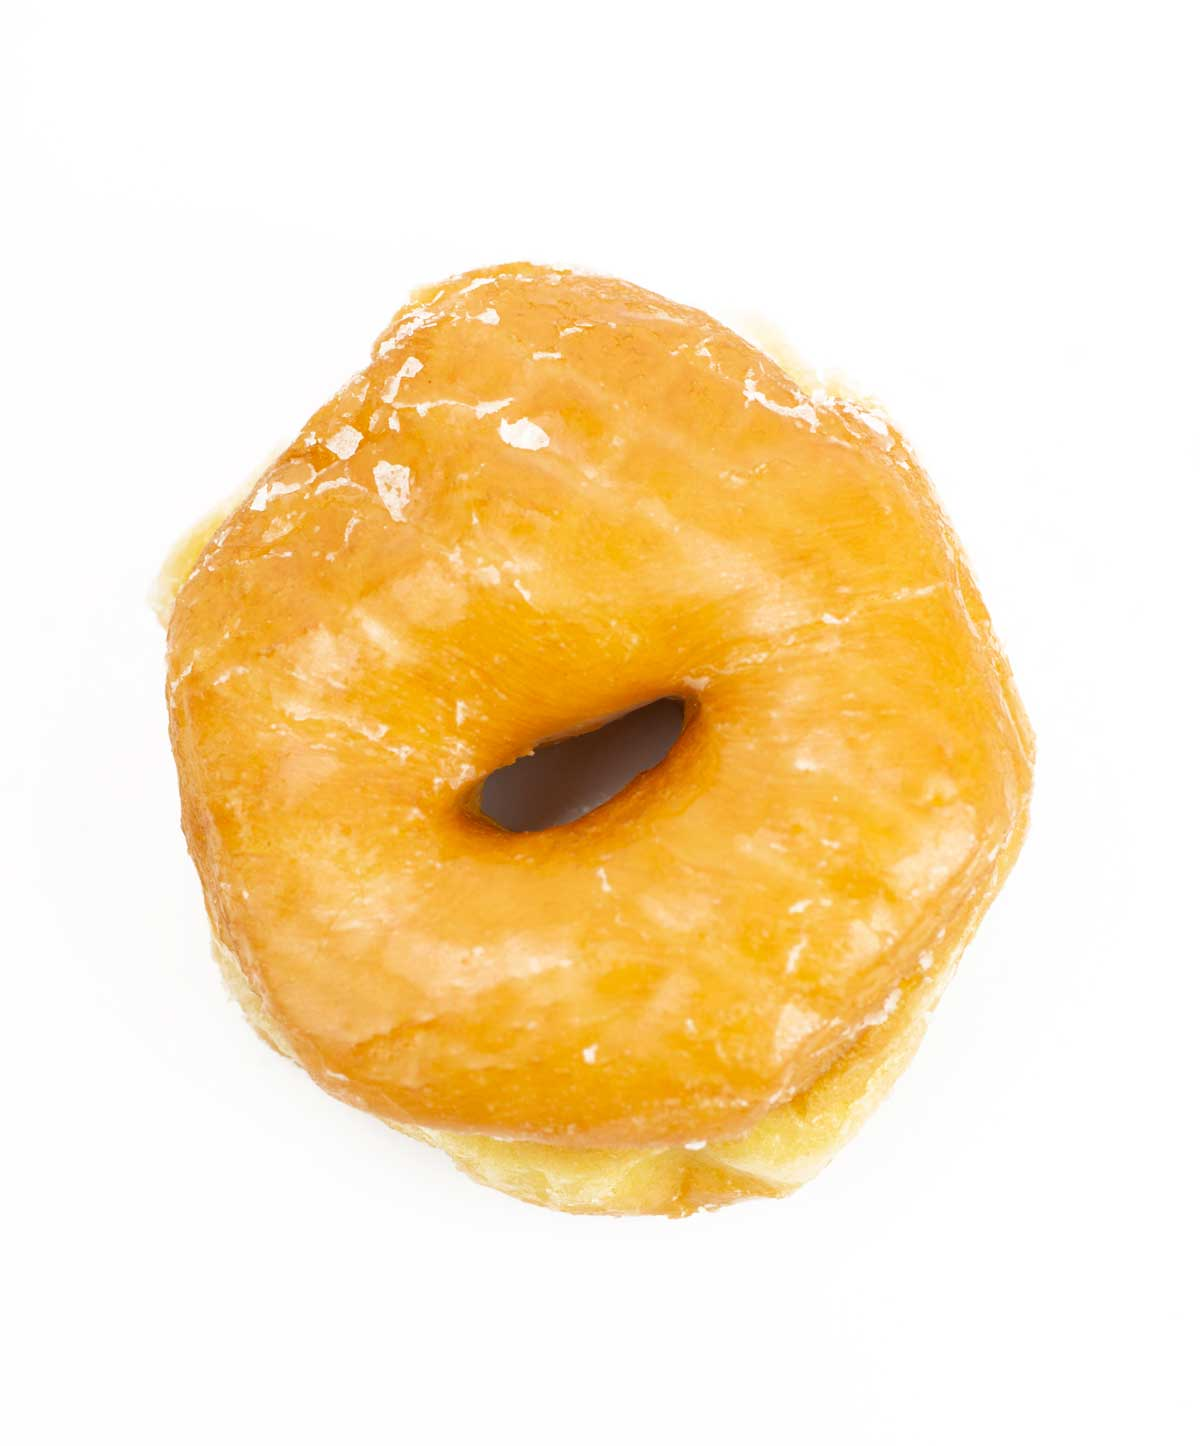 picture of glazed donut from Mark's Do-Nut Shop in North Little Rock